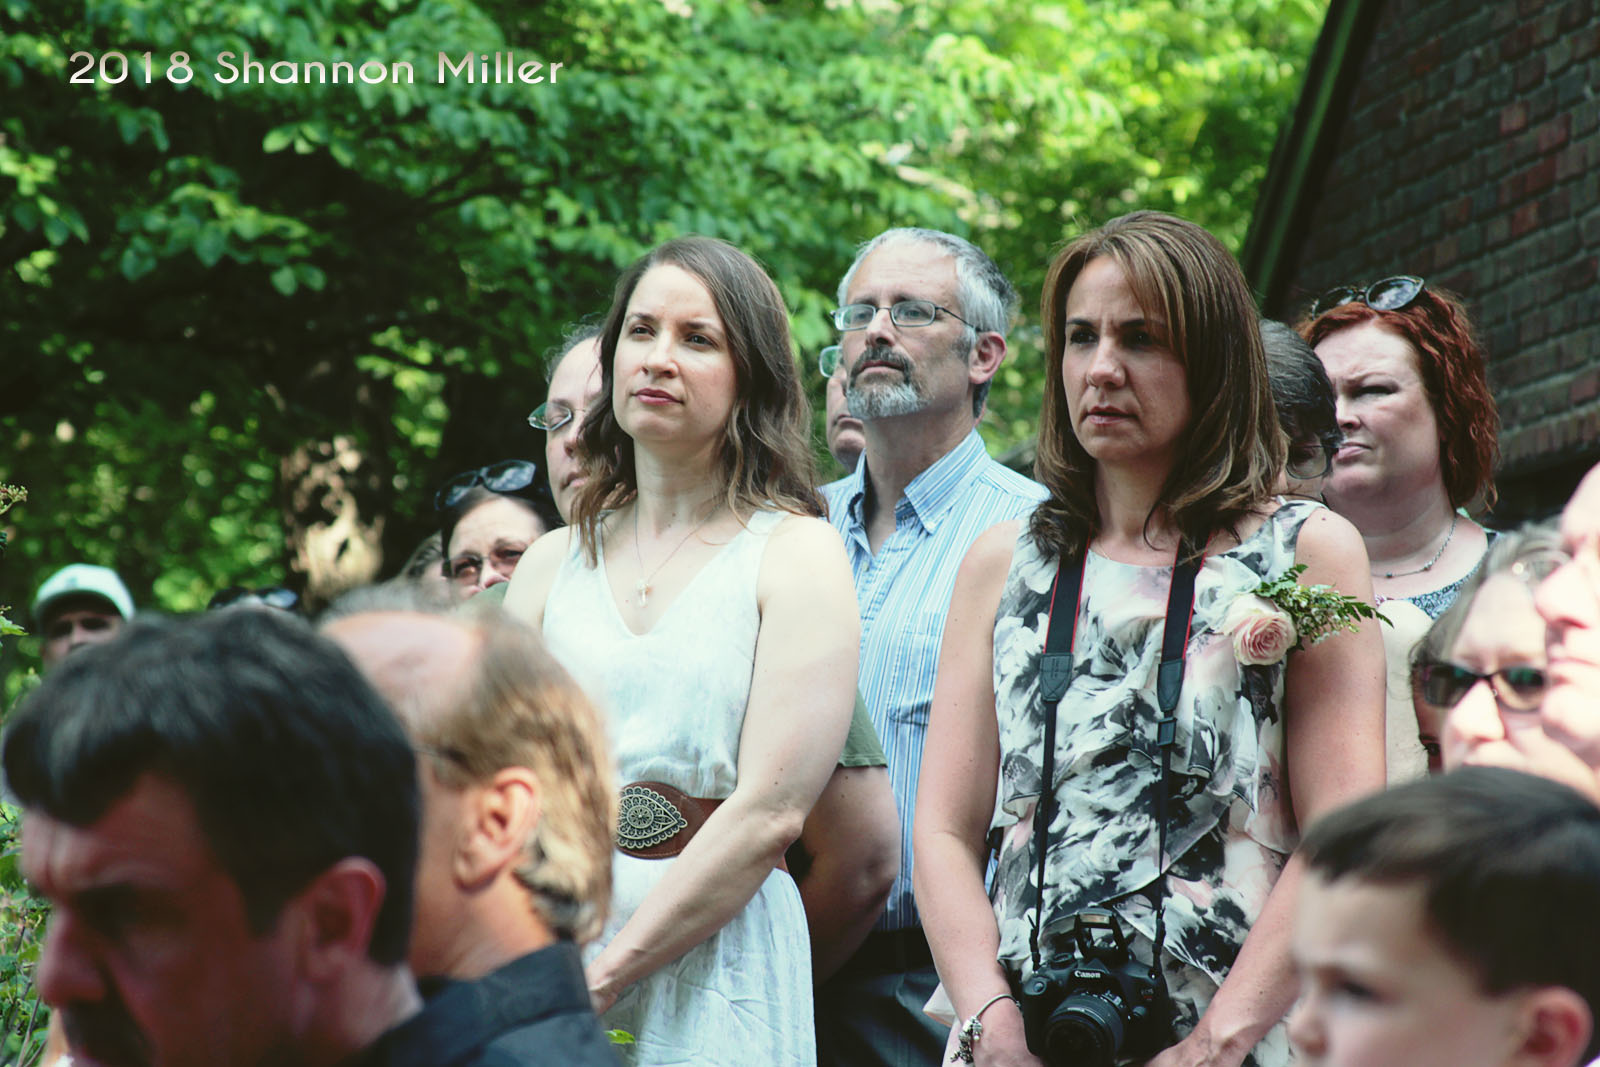 The audience listened intently to the couple's vows